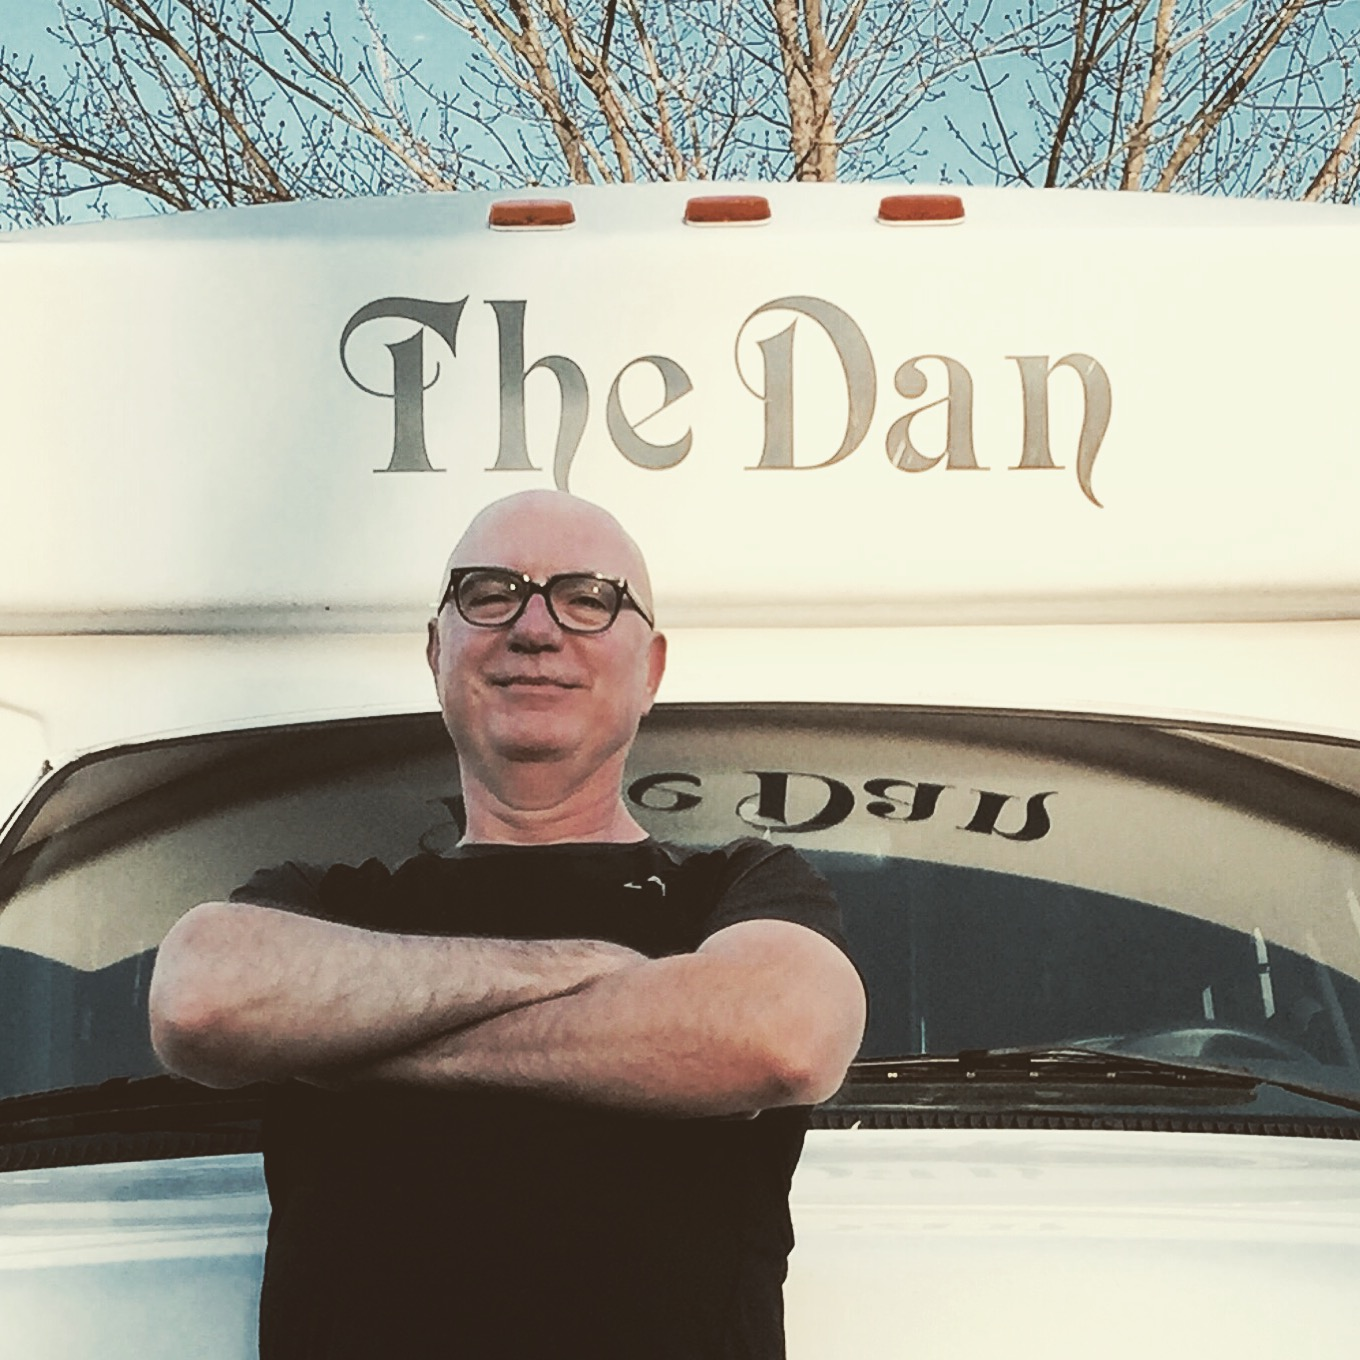 Dan Tanner - I love to wander; whether its to the the 32 countries I've visited or through the streets of Atlanta where I've lived for over 30 years. I've grown to love this city for its unique blend of Southern urban culture. And there's nothing I enjoy more than to introduce it to visitors and potential new ATLiens alike. Let me show you the diverse neighborhoods and rich history of Atlanta in a personalized way that only a local can